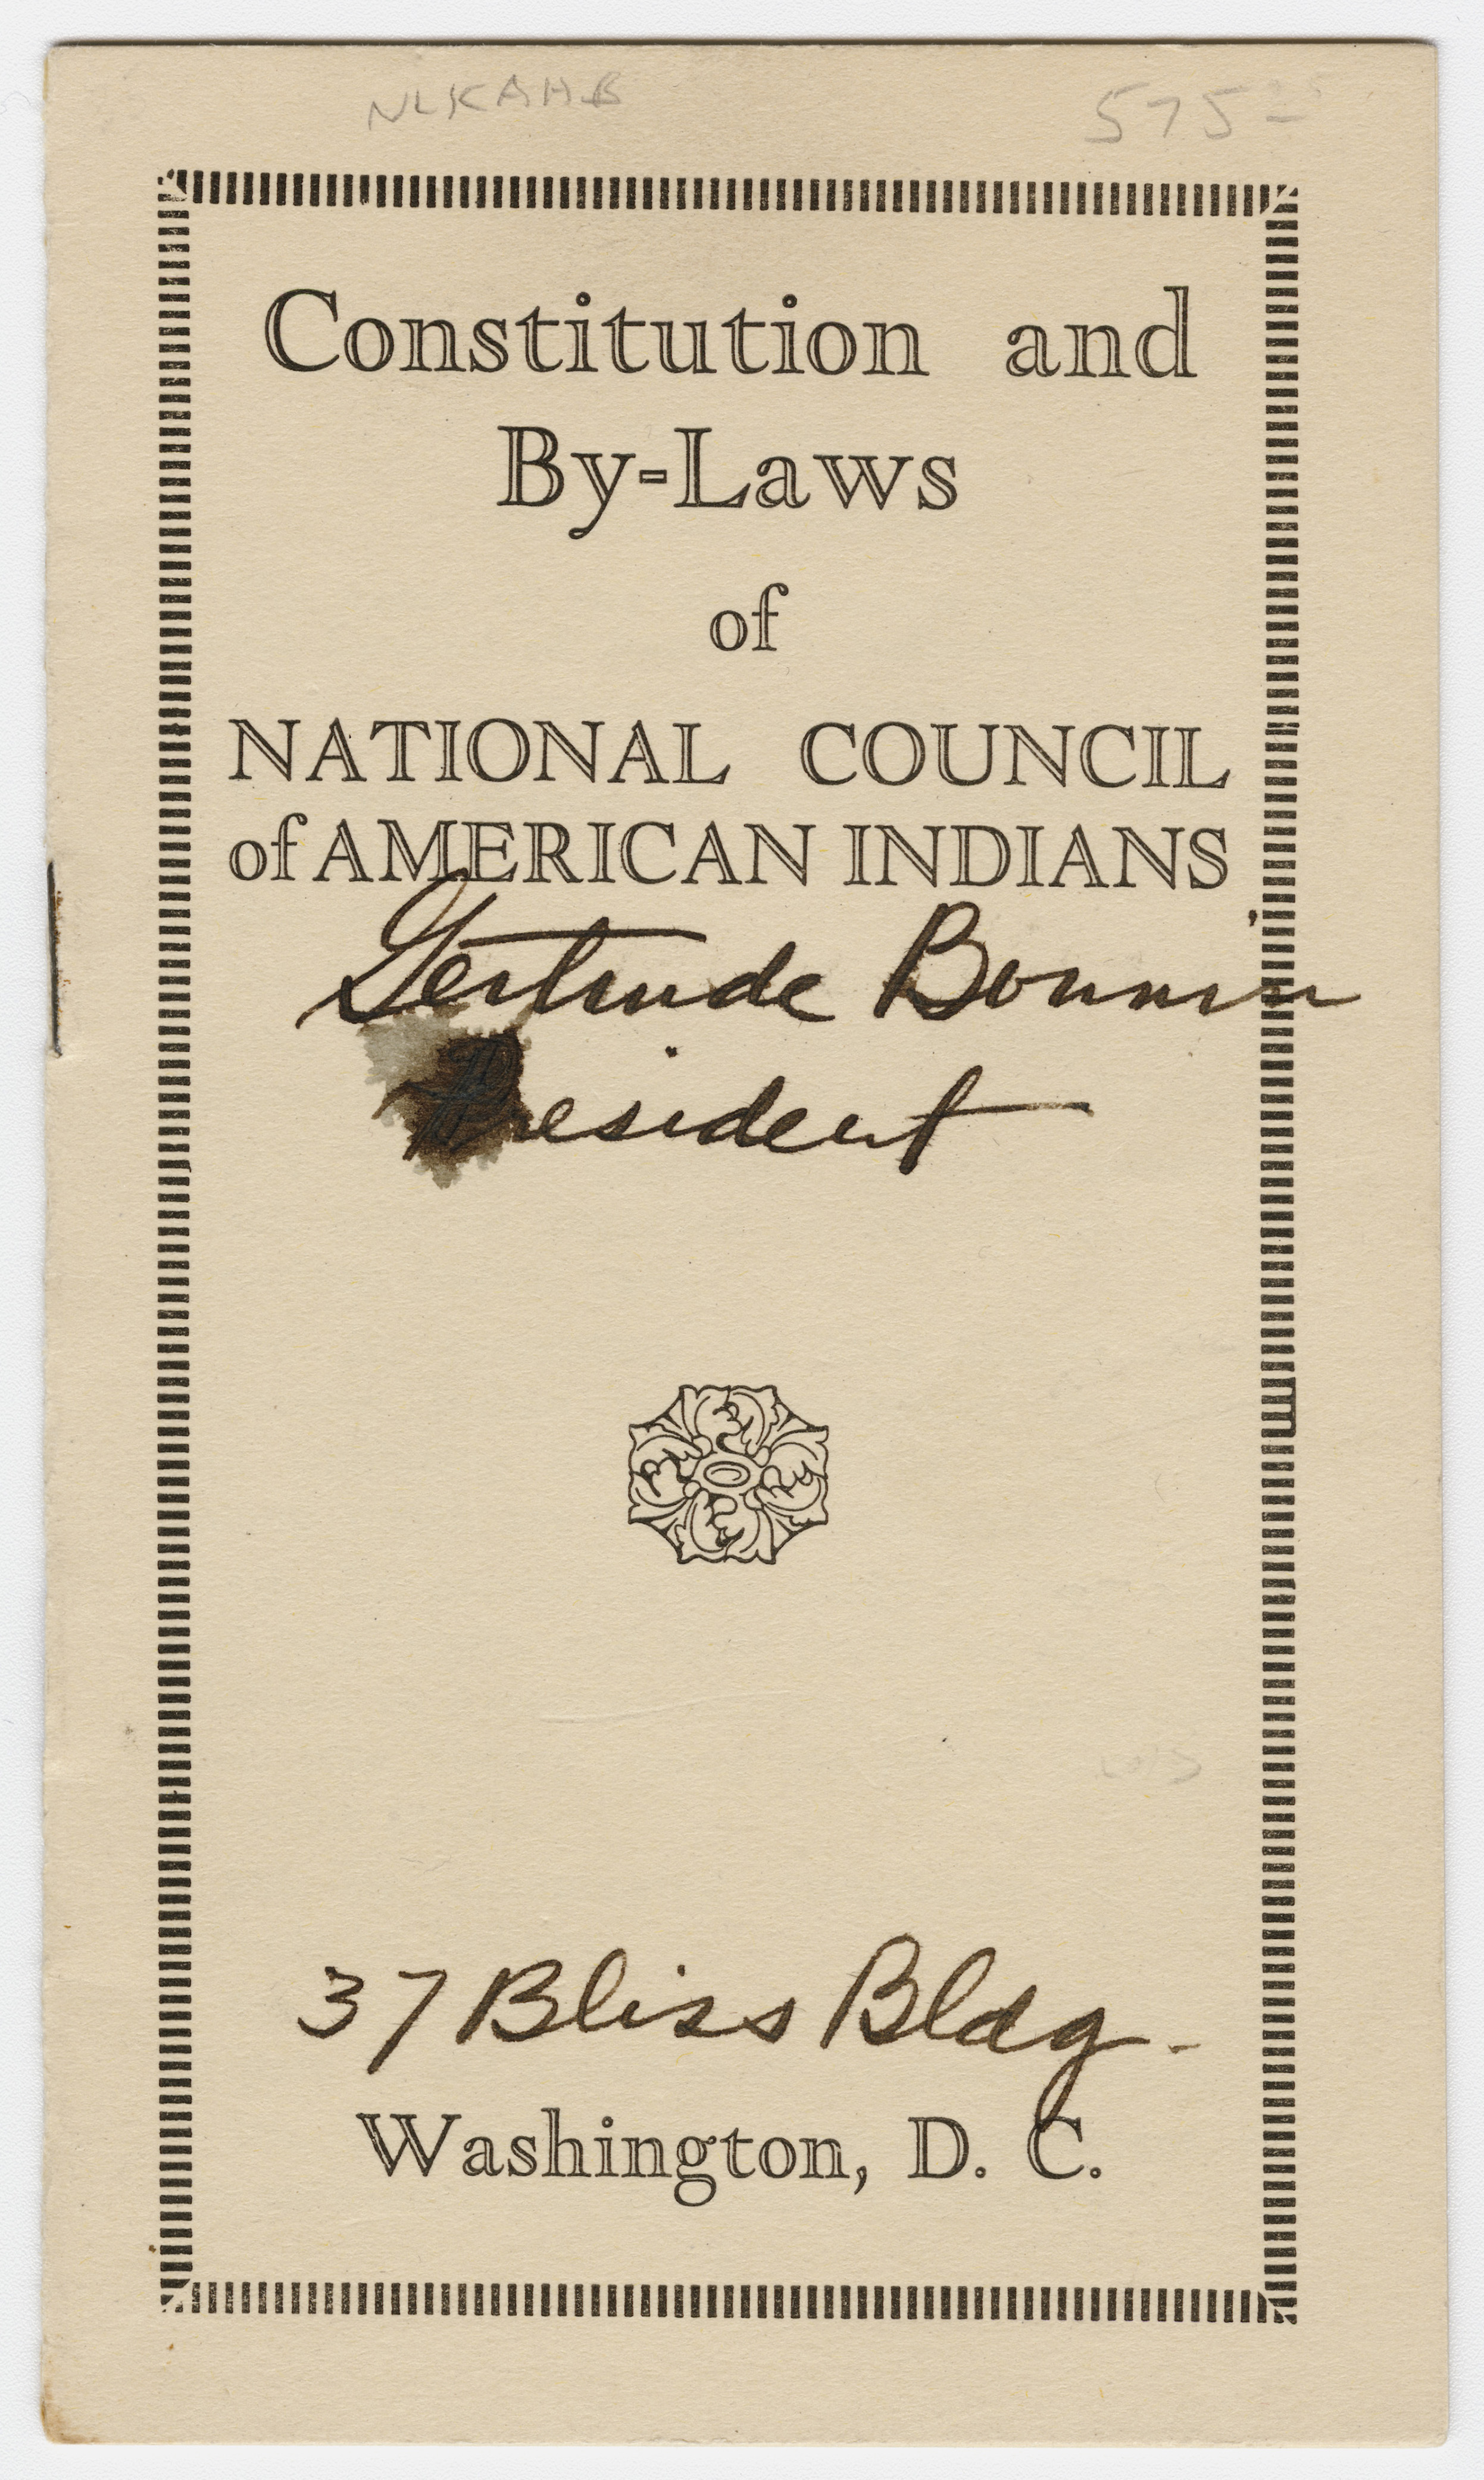 Constitution and By-Laws of the National Council of American Indians